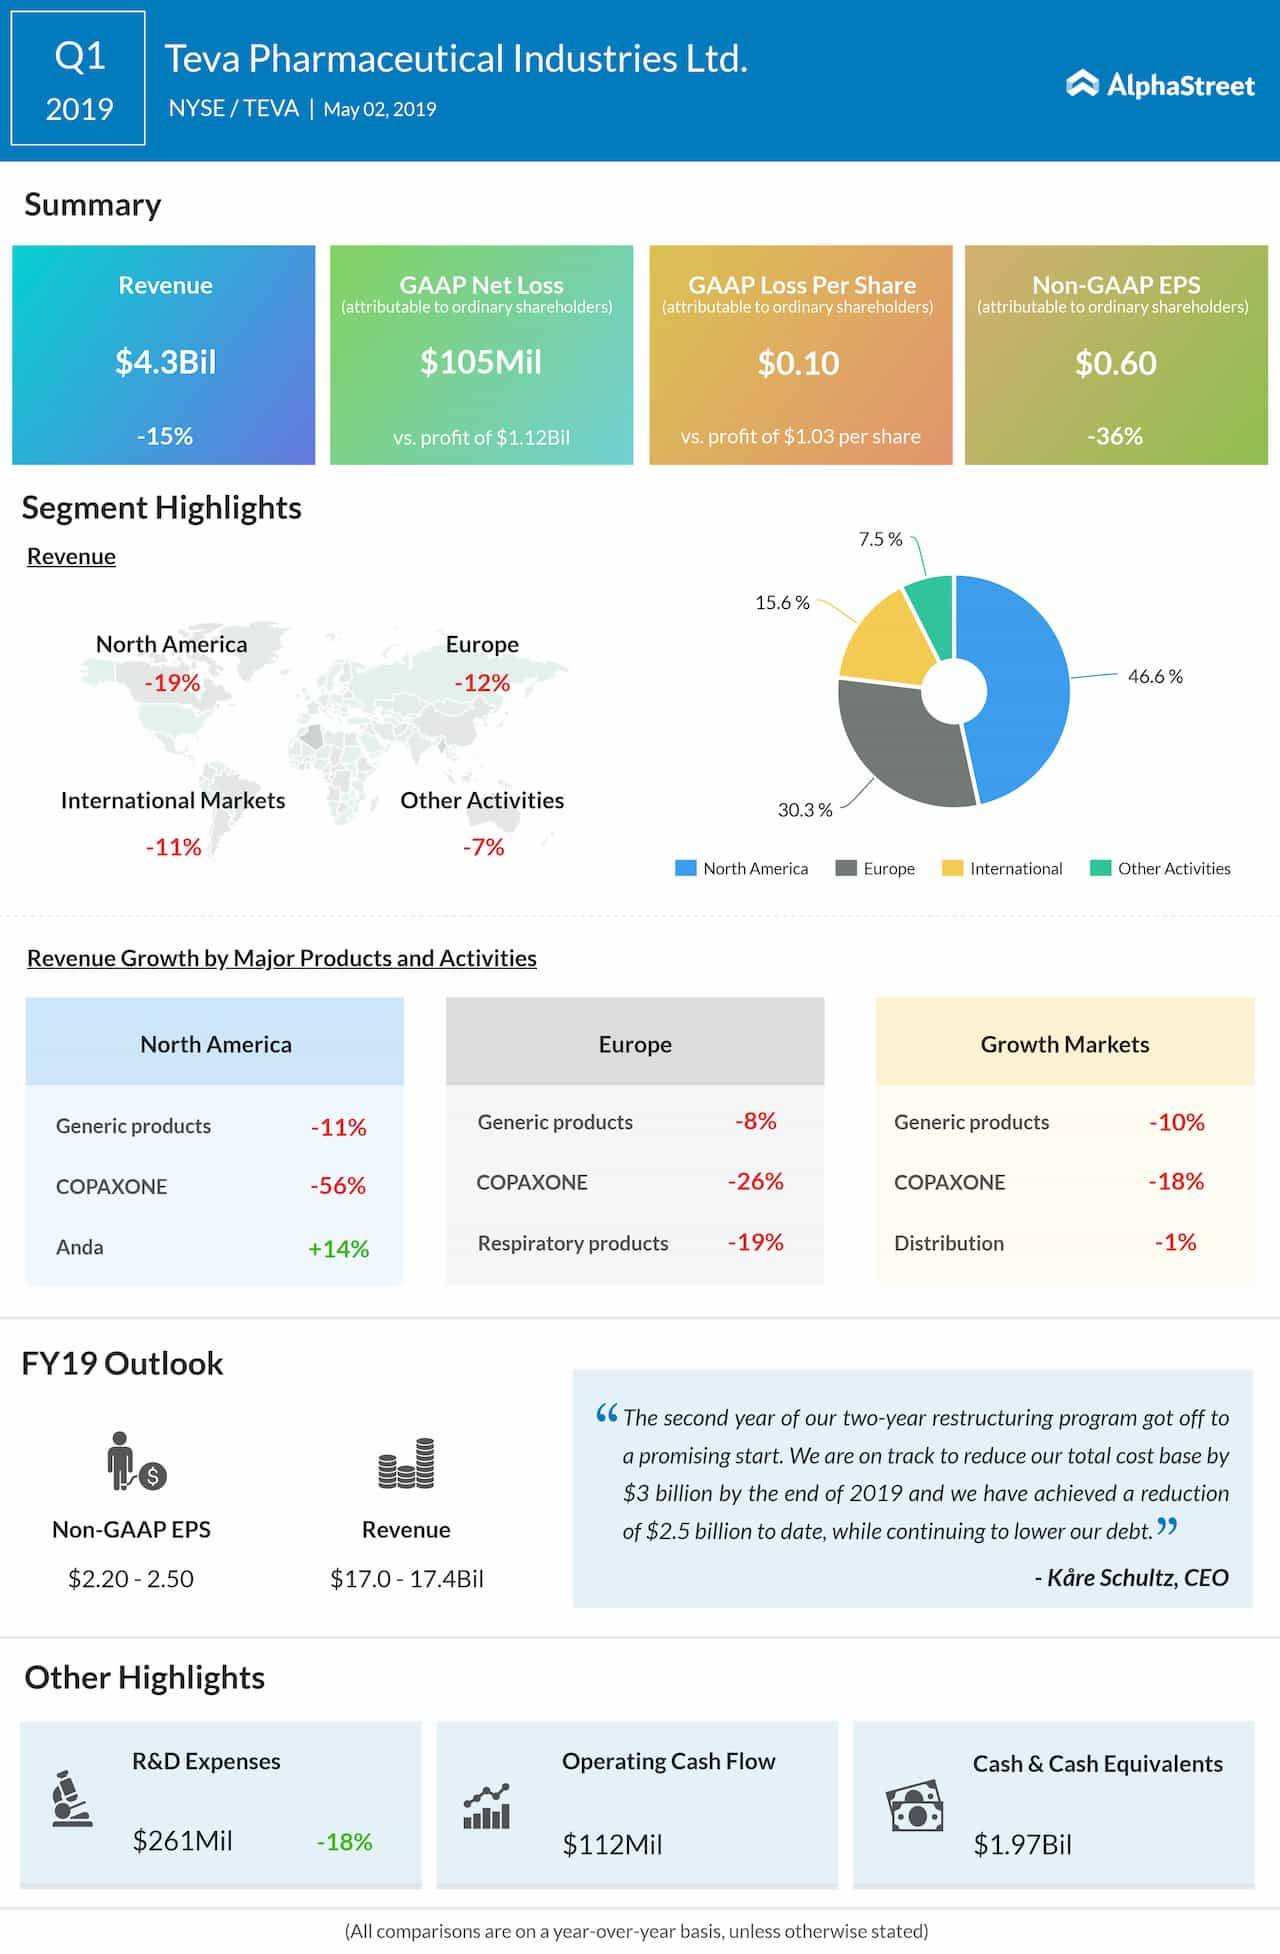 Teva Pharmaceutical Q1 2019 earnings infographic